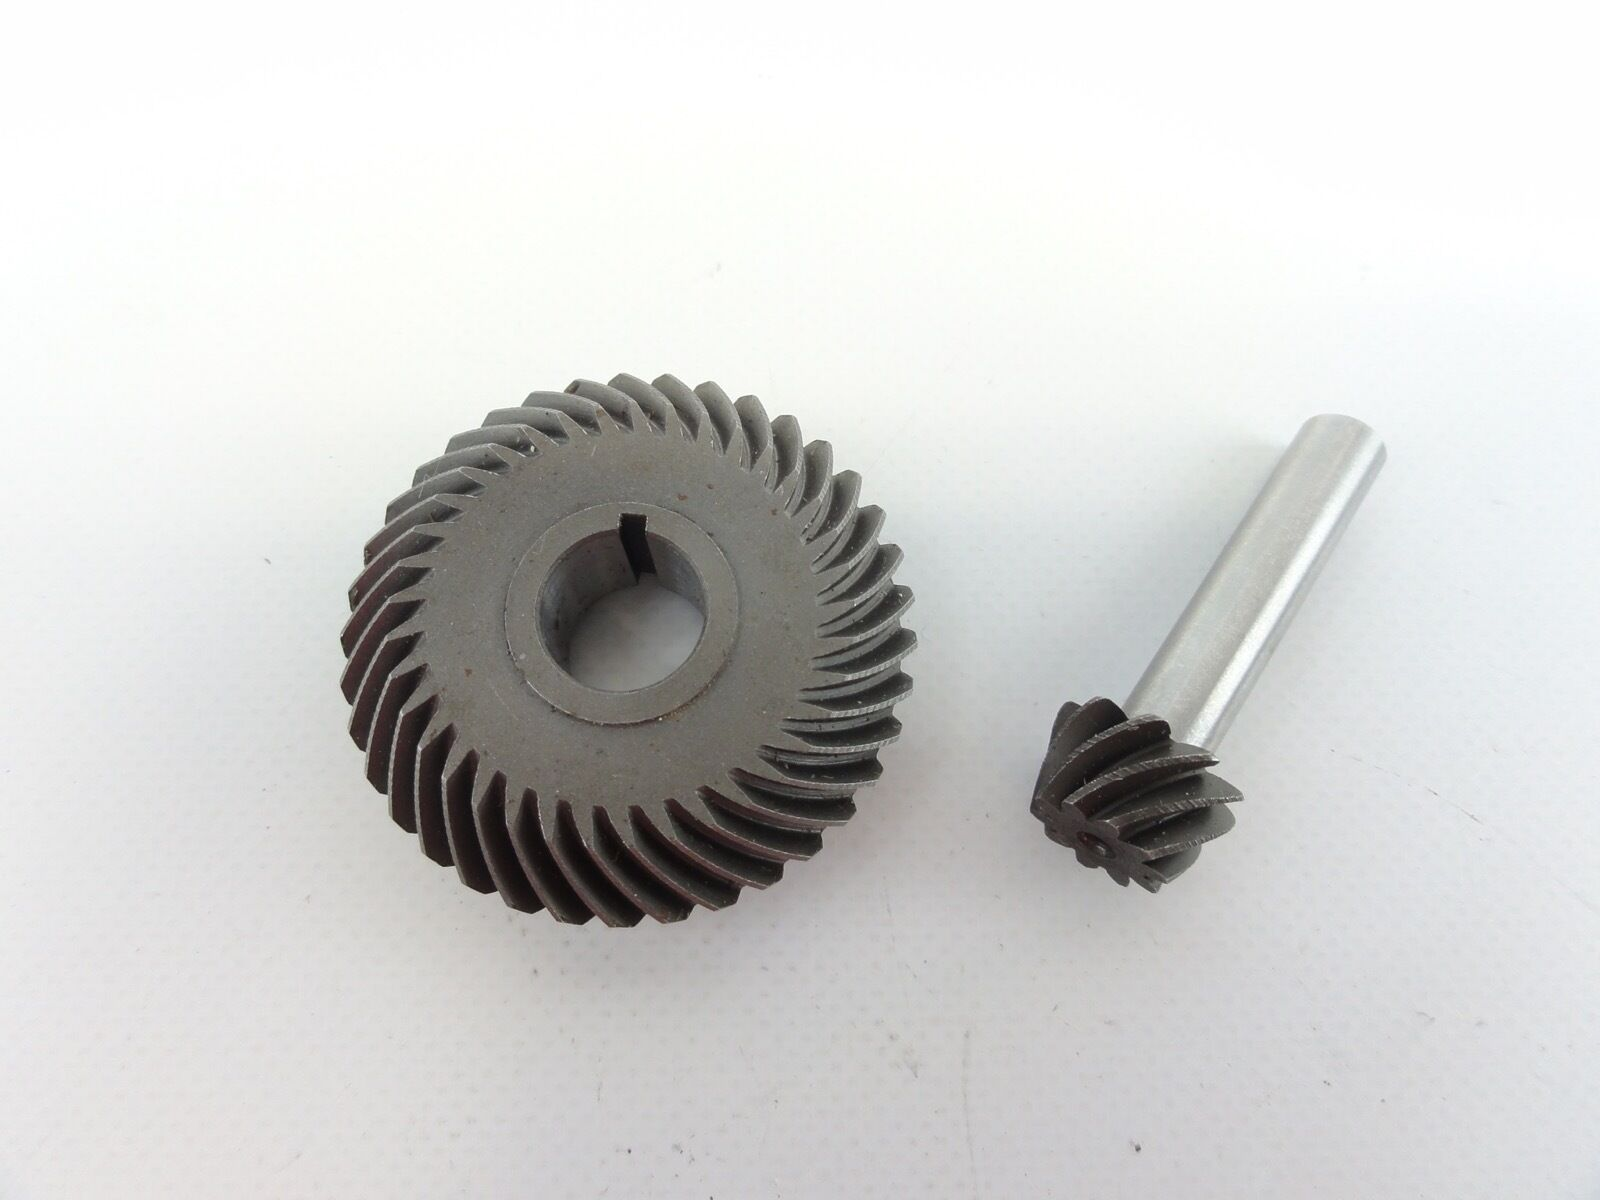 Milwaukee  32-60-2170 New Genuine Gear & Pinion Assembly for 0375-1 Angle Drill